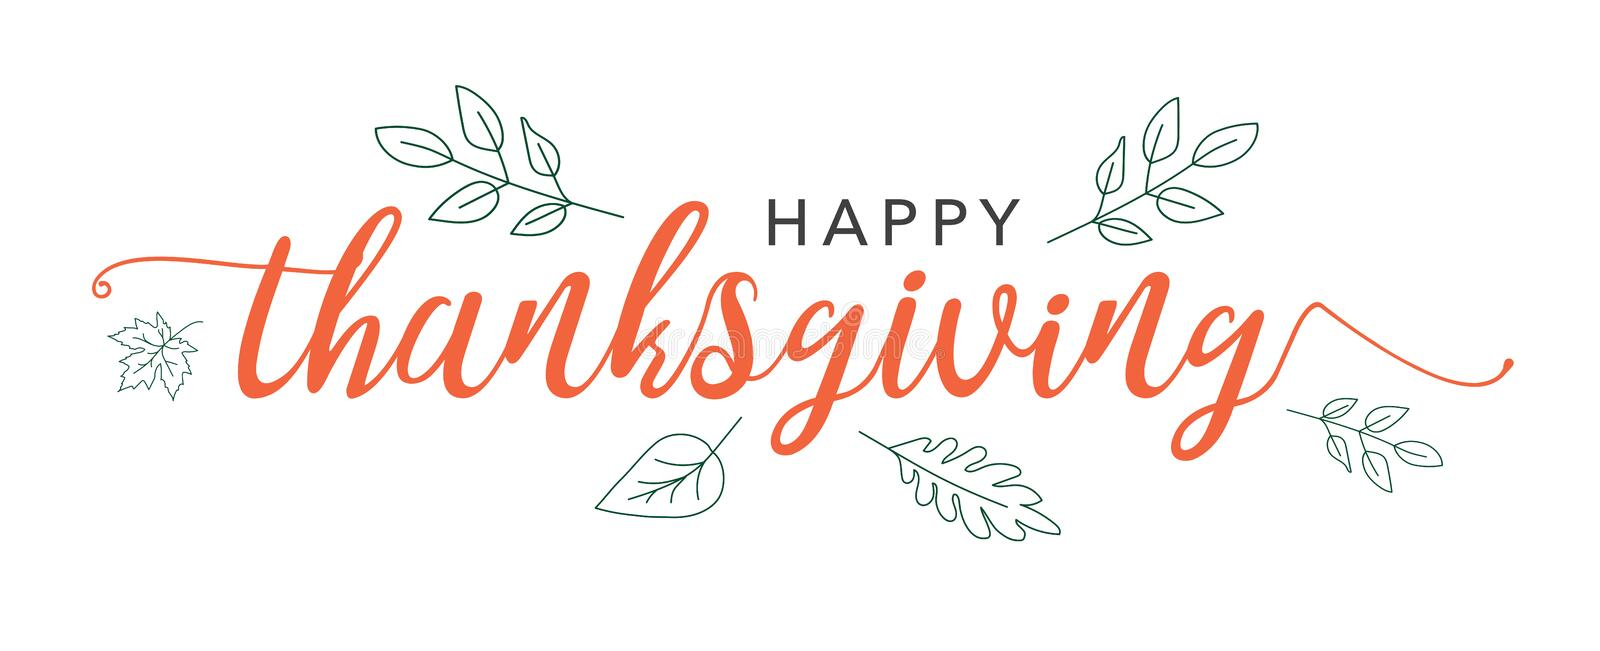 Happy Thanksgiving Calligraphy Text with Illustrated Green Leaves Over White Background royalty free stock photography